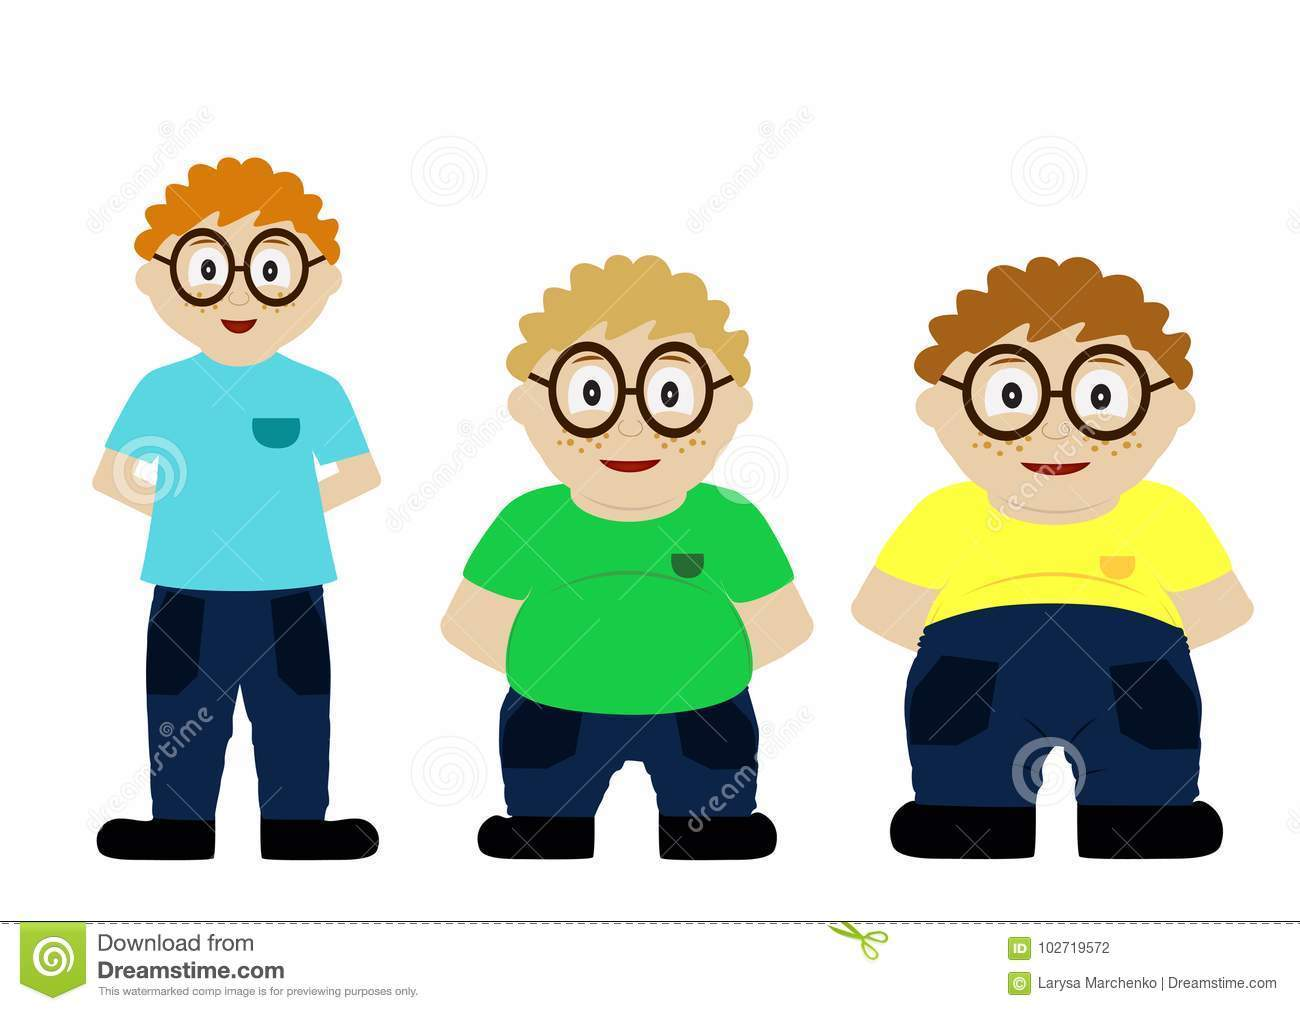 Thin child clipart graphic royalty free download Thin child clipart 2 » Clipart Portal graphic royalty free download